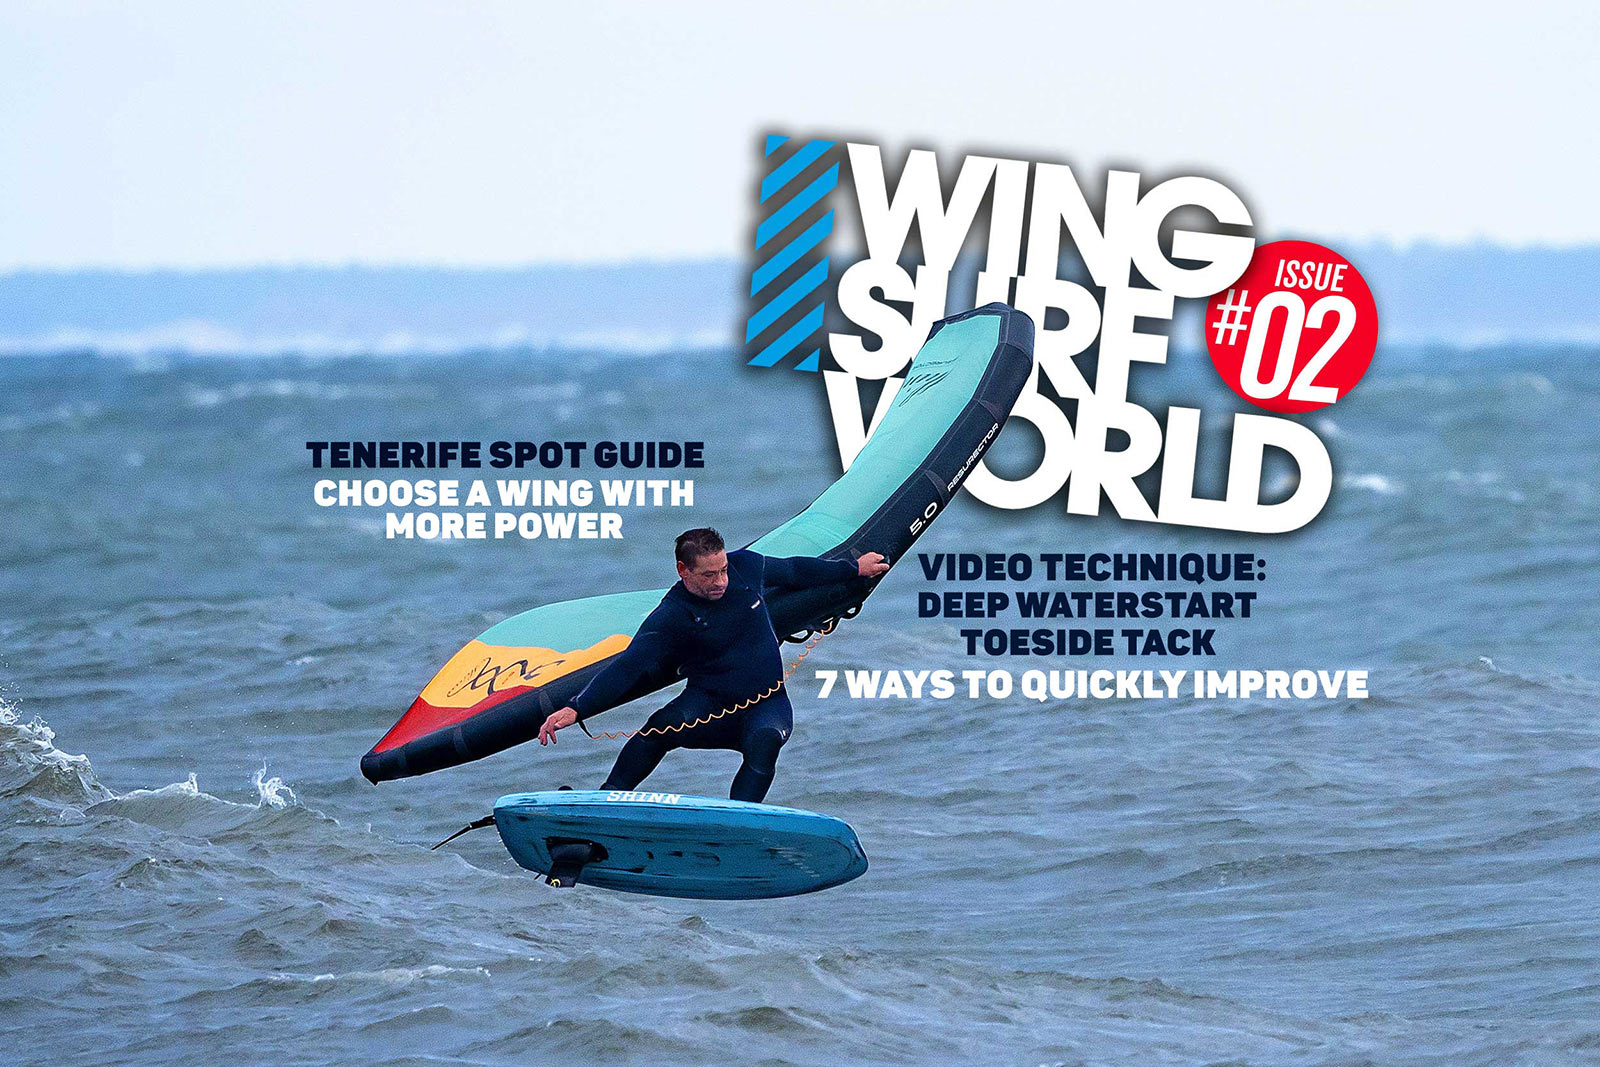 Wing Surf World issue 02, featuring Mark Shinn on the cover